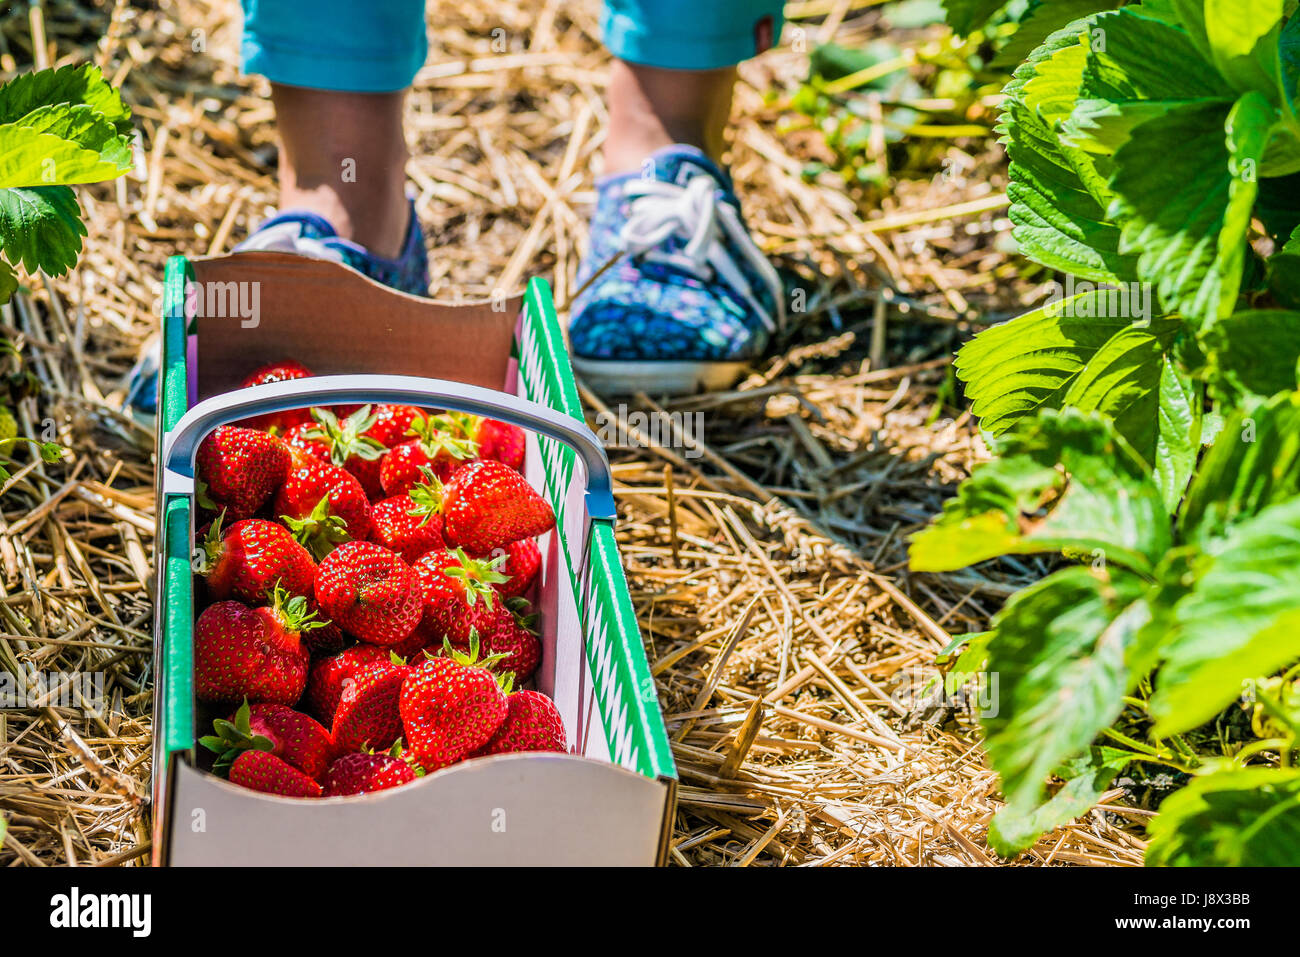 Women standing in front of carton box filled with fresh organic strawberry on the ground - Stock Image